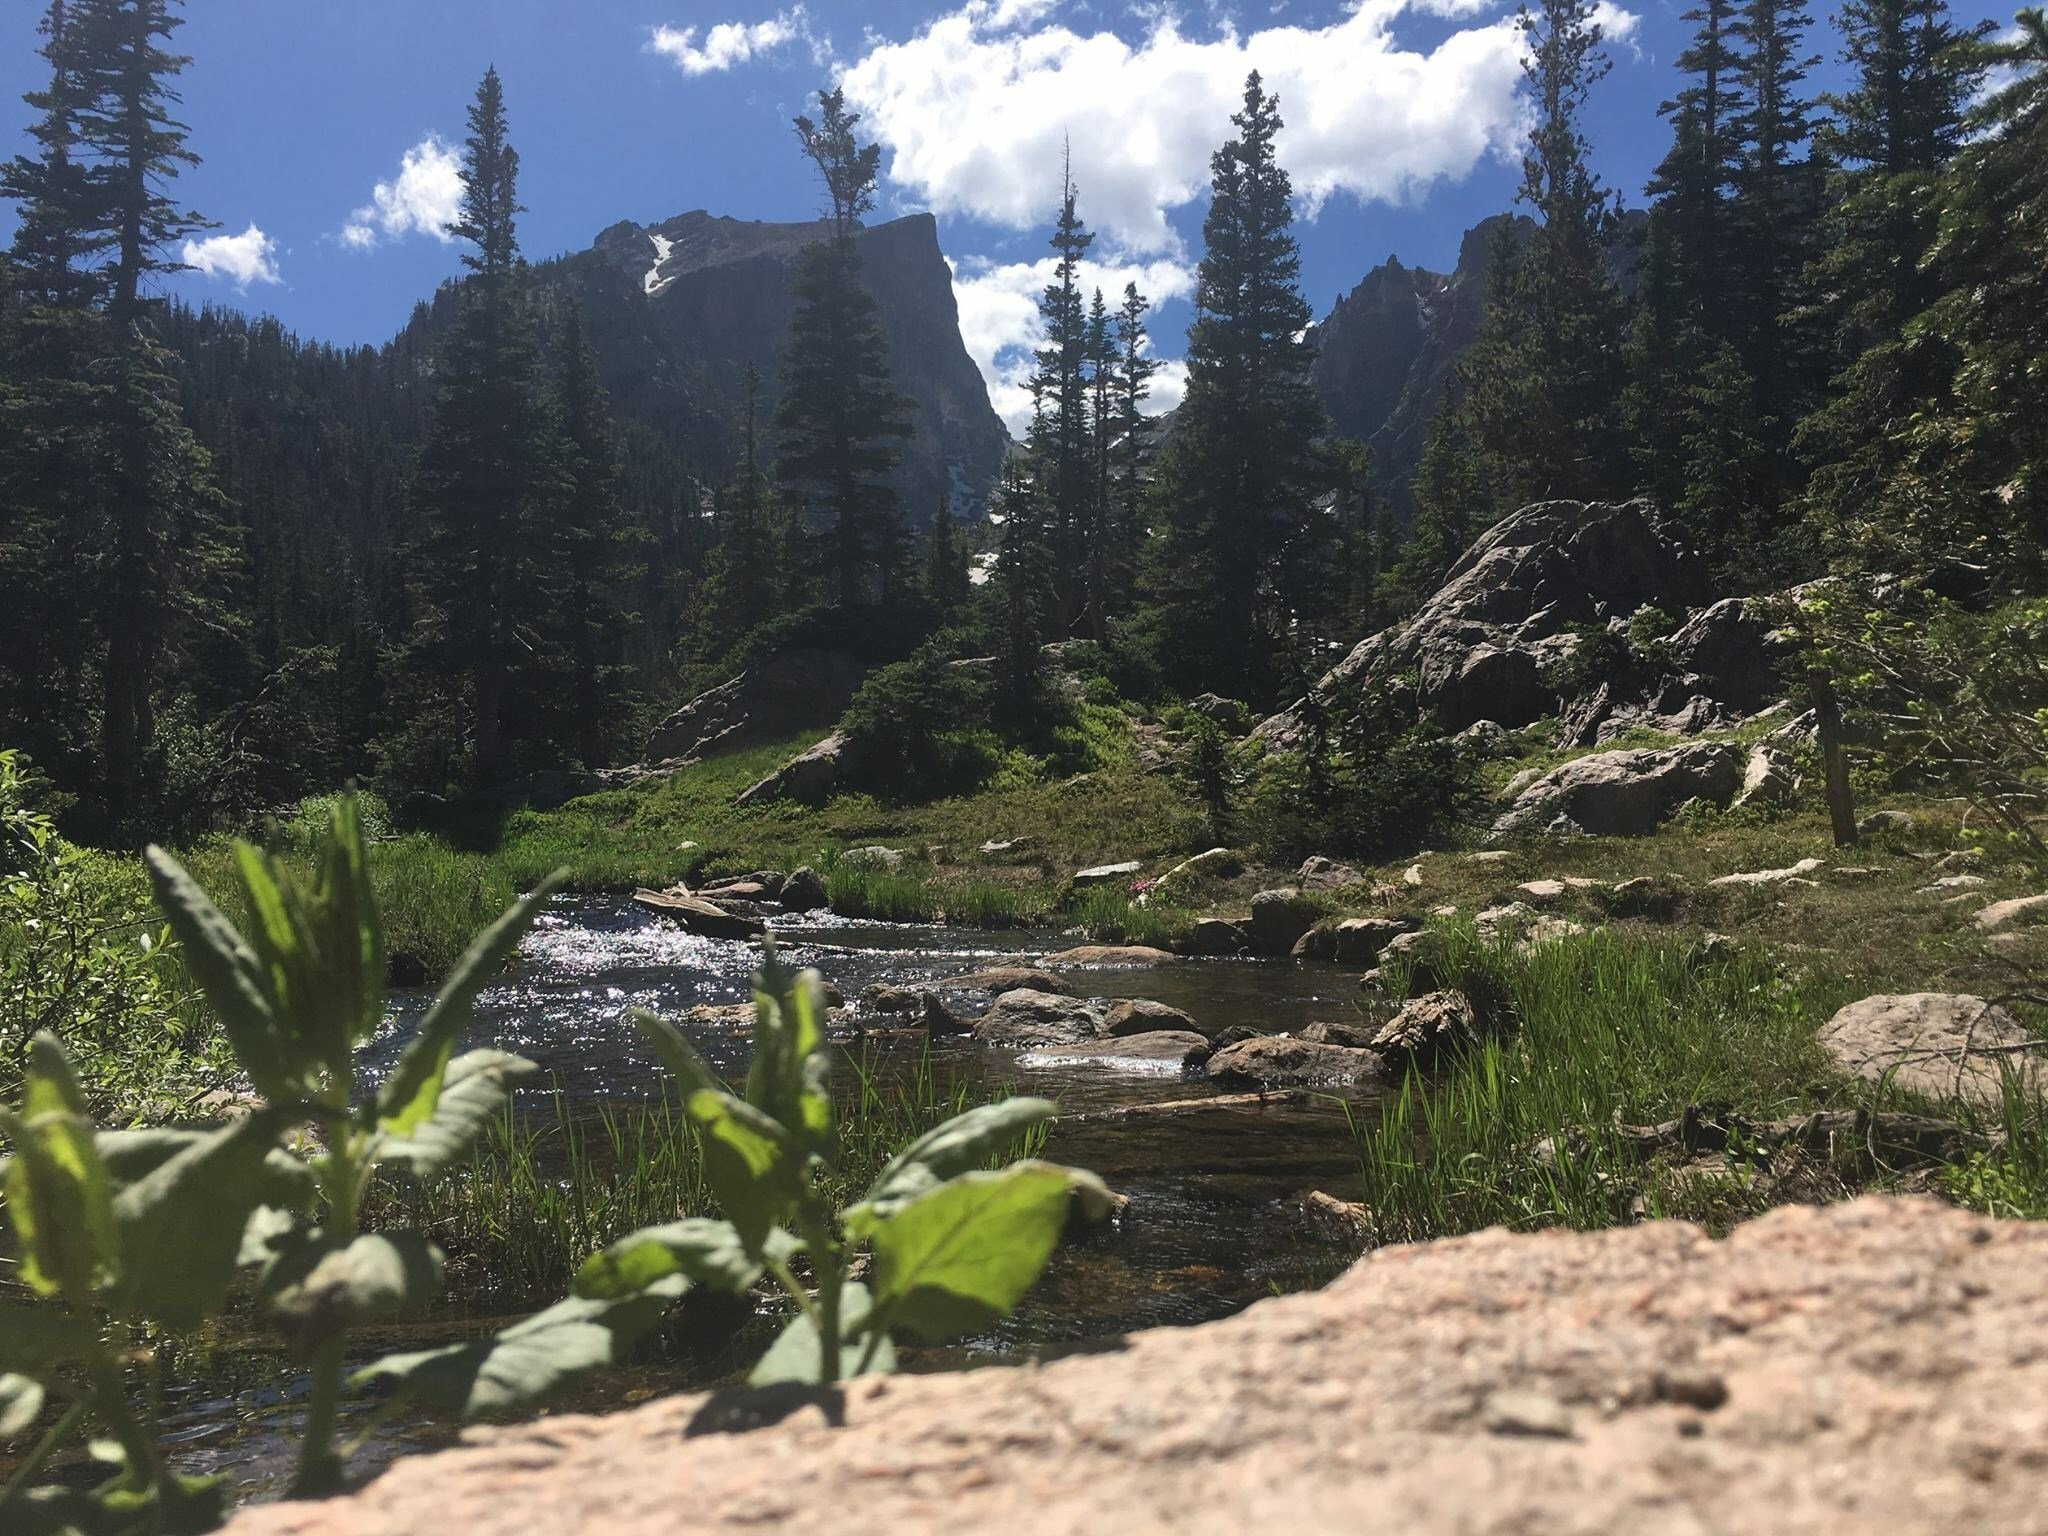 Dream lake at Rocky Mountain National Park during the summer of 2016.